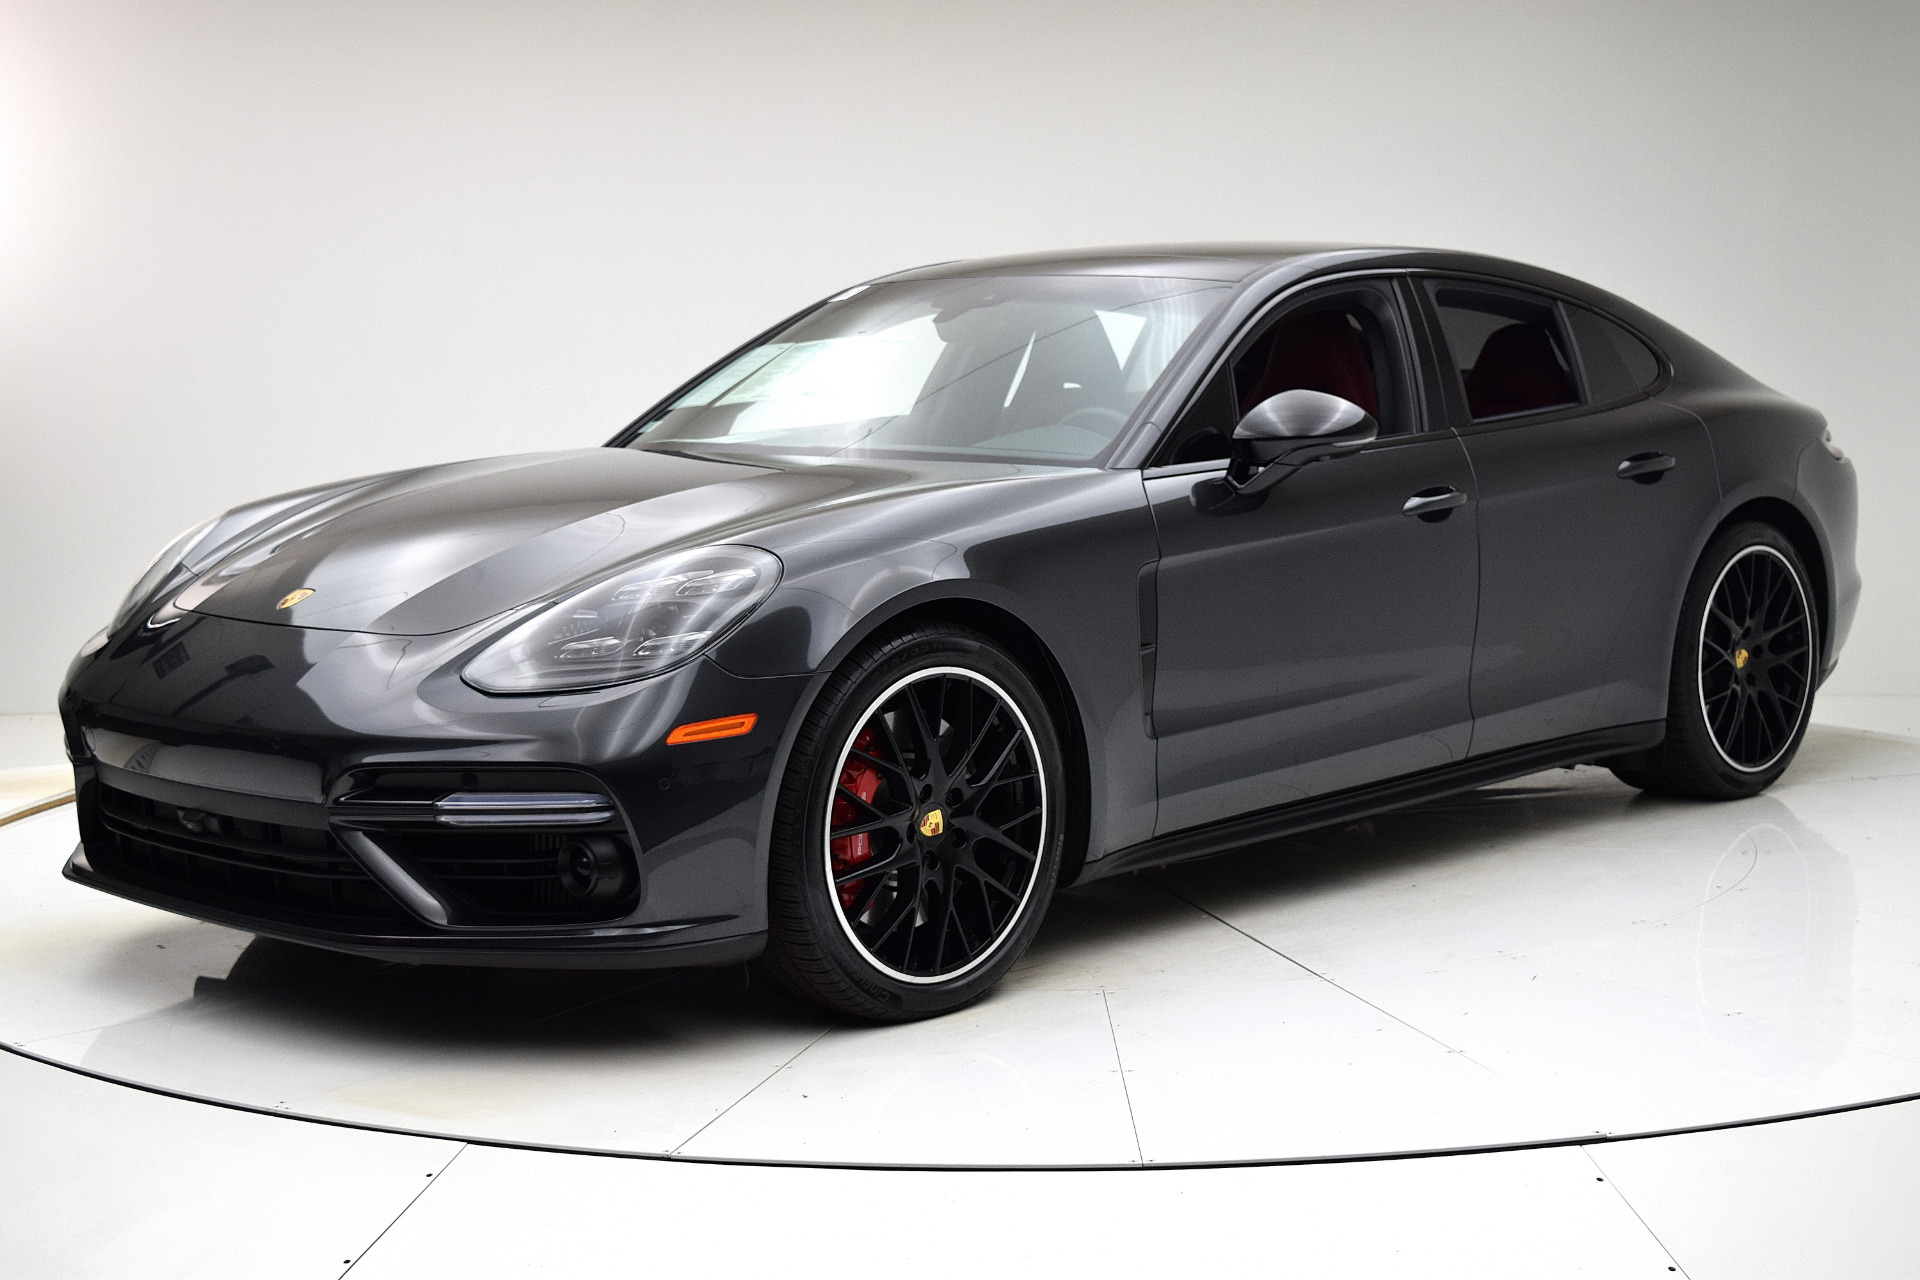 Used 2017 Porsche Panamera Turbo for sale Sold at F.C. Kerbeck Aston Martin in Palmyra NJ 08065 2